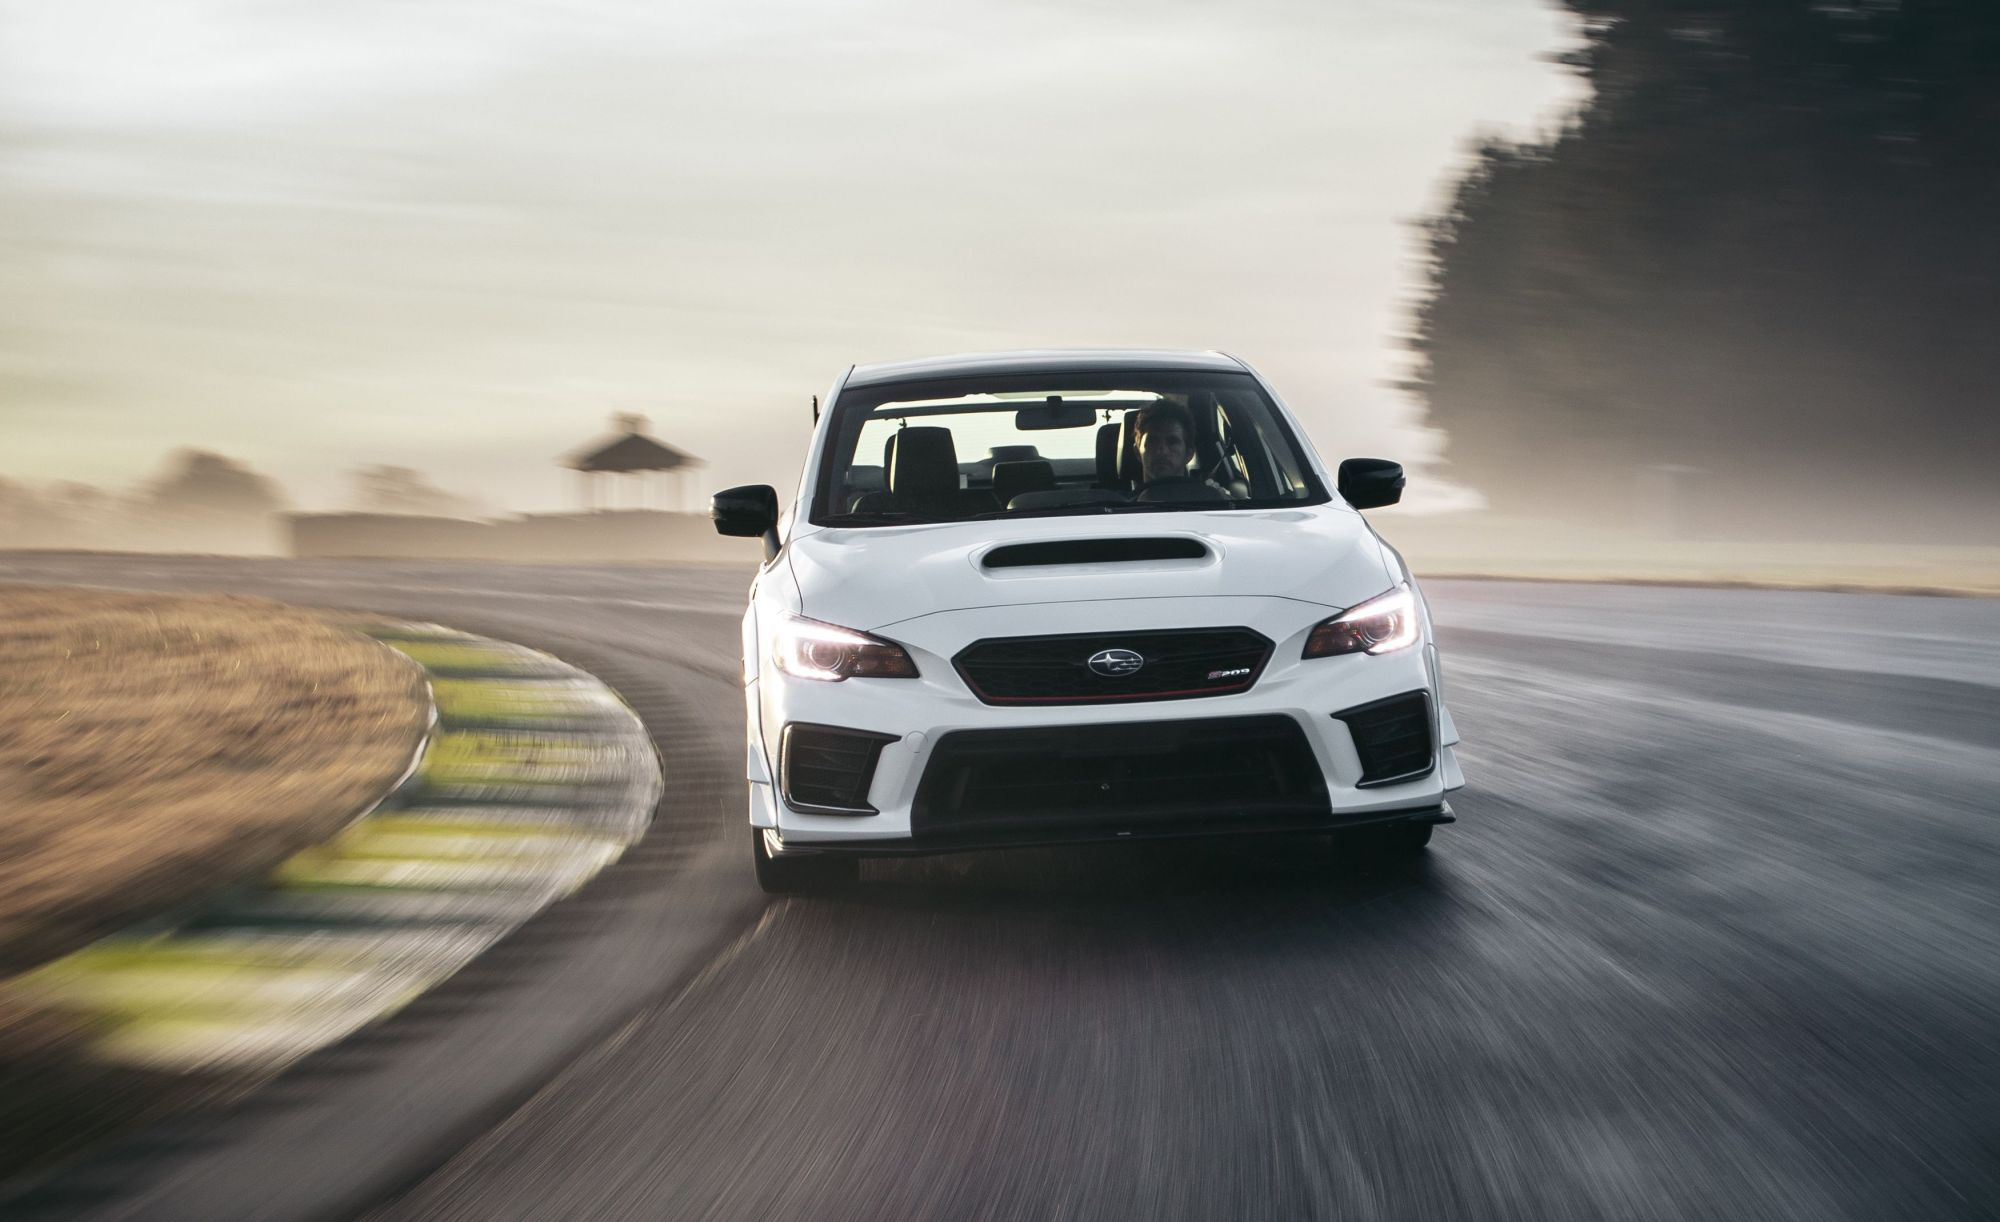 hight resolution of exclusive the 2019 subaru sti s209 brings long awaited power increase to the proto rally patriarch